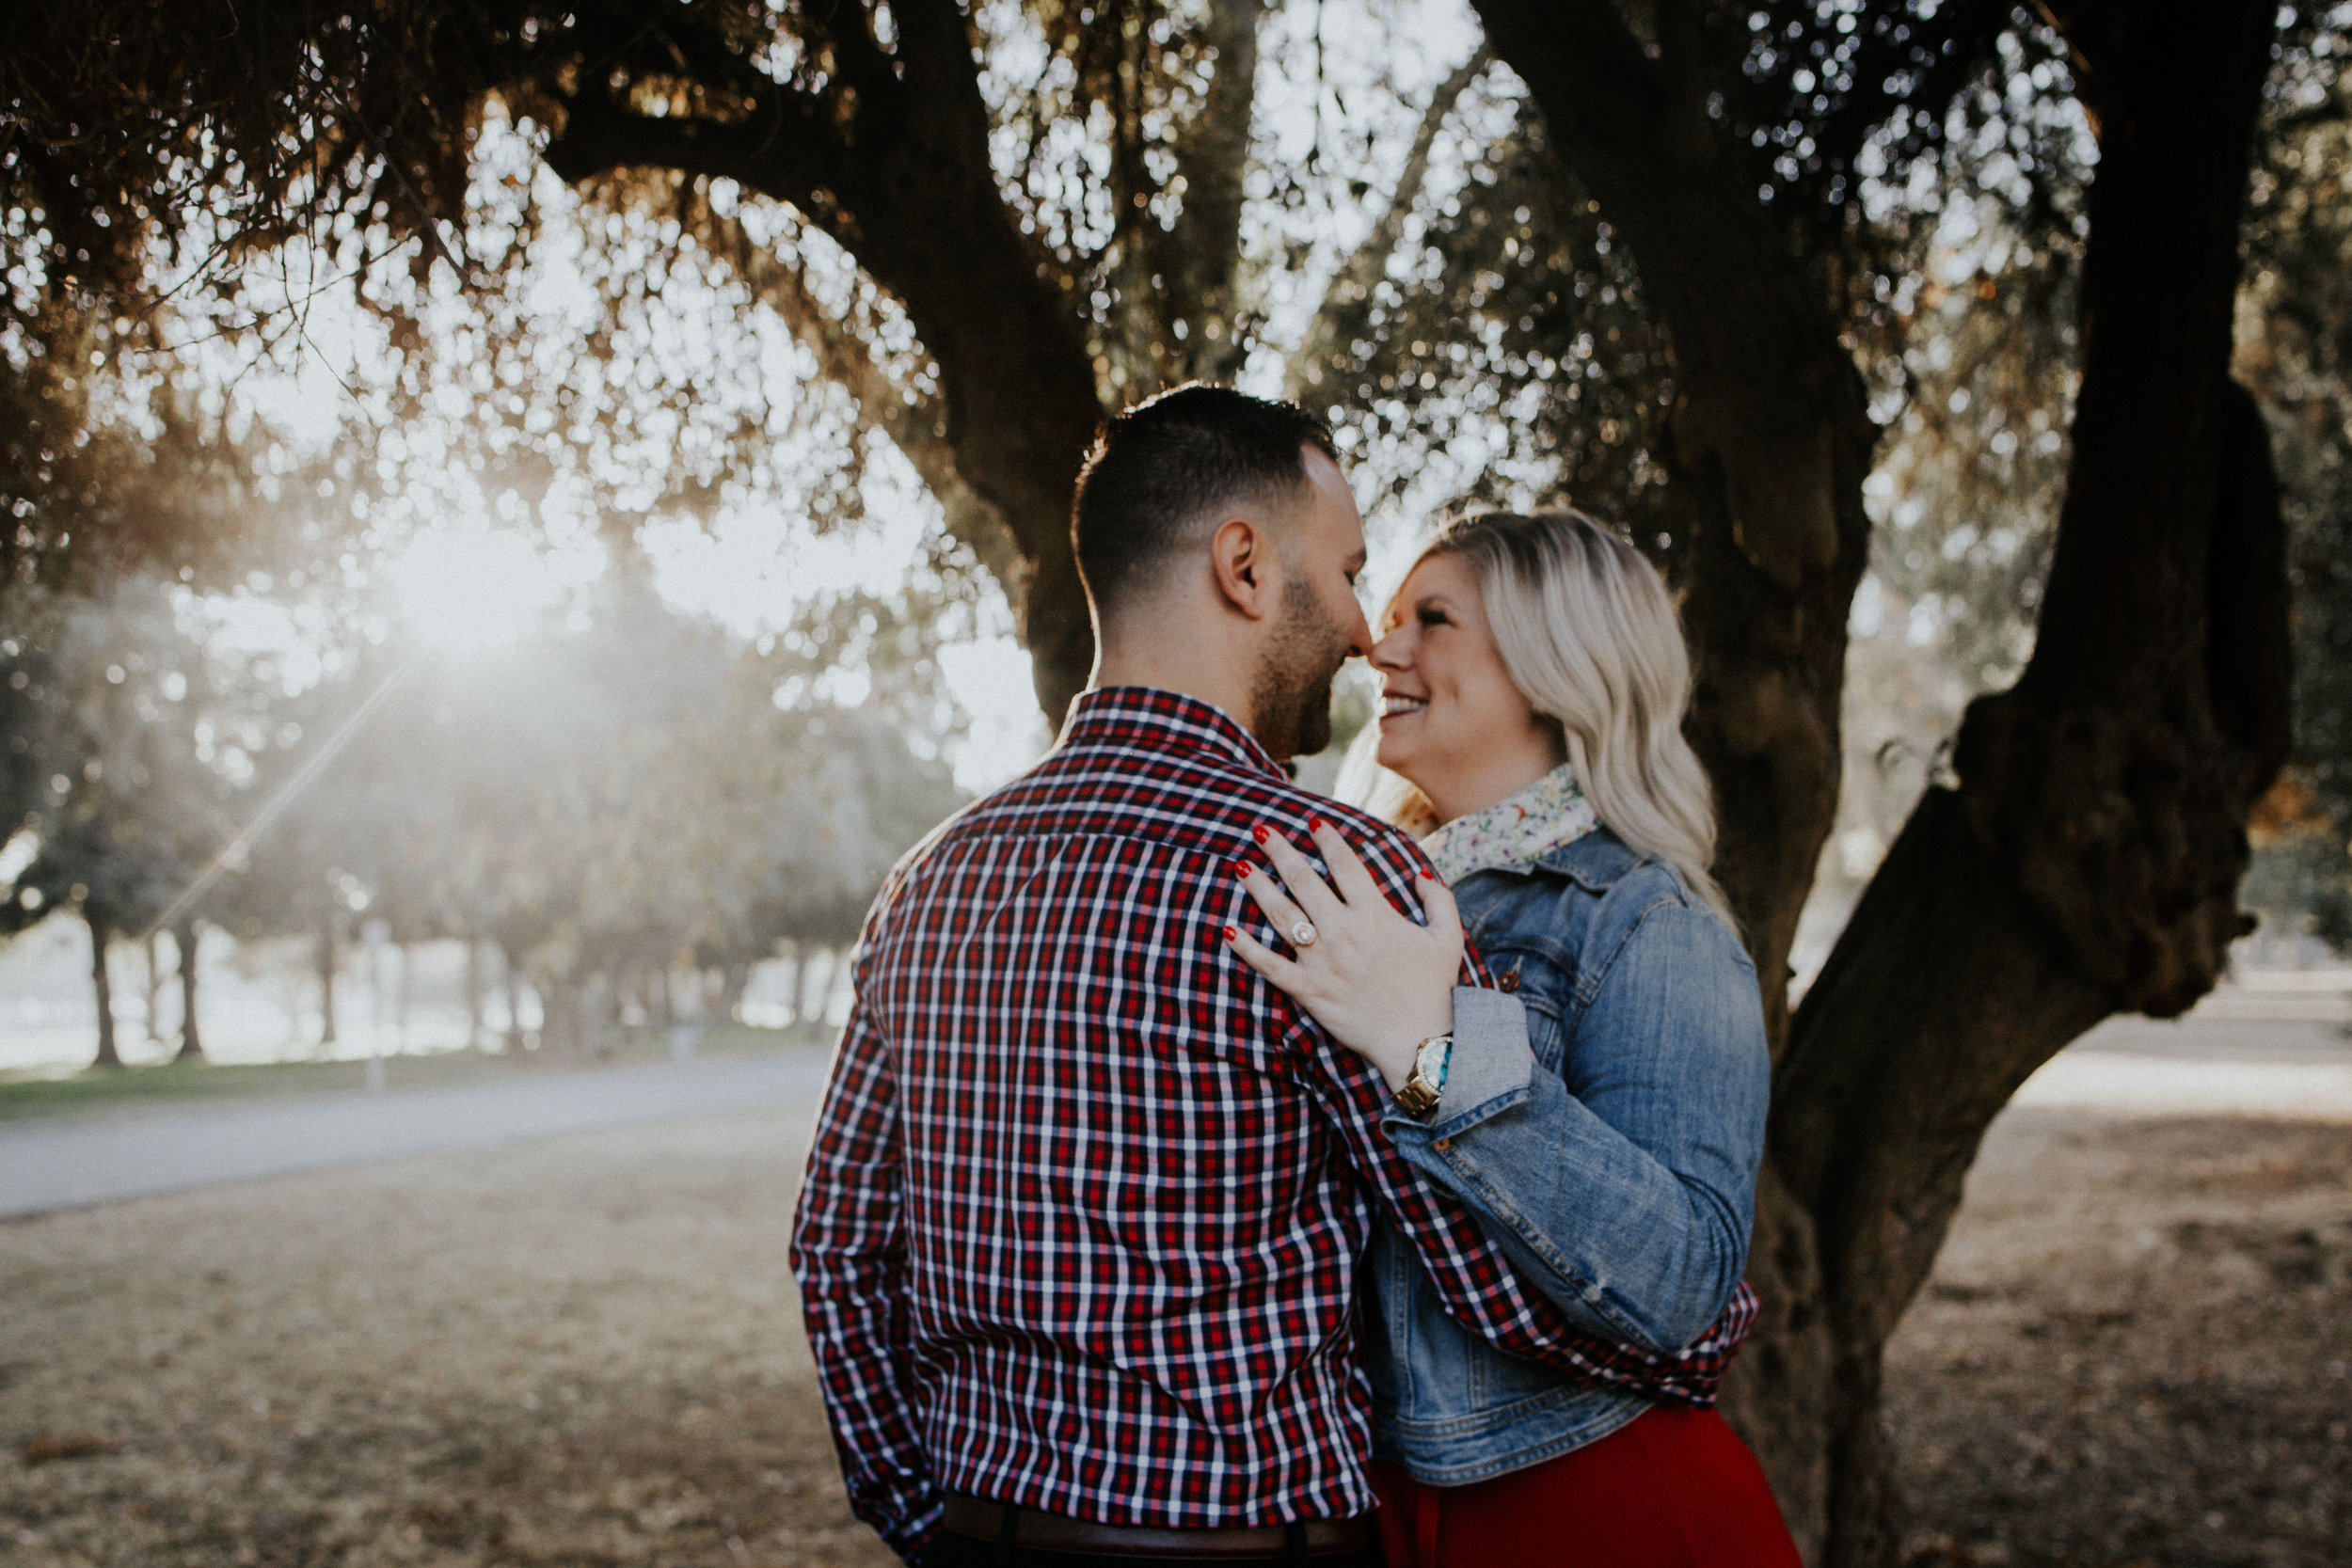 Guy and girl holding each other near tree with the sun peaking through